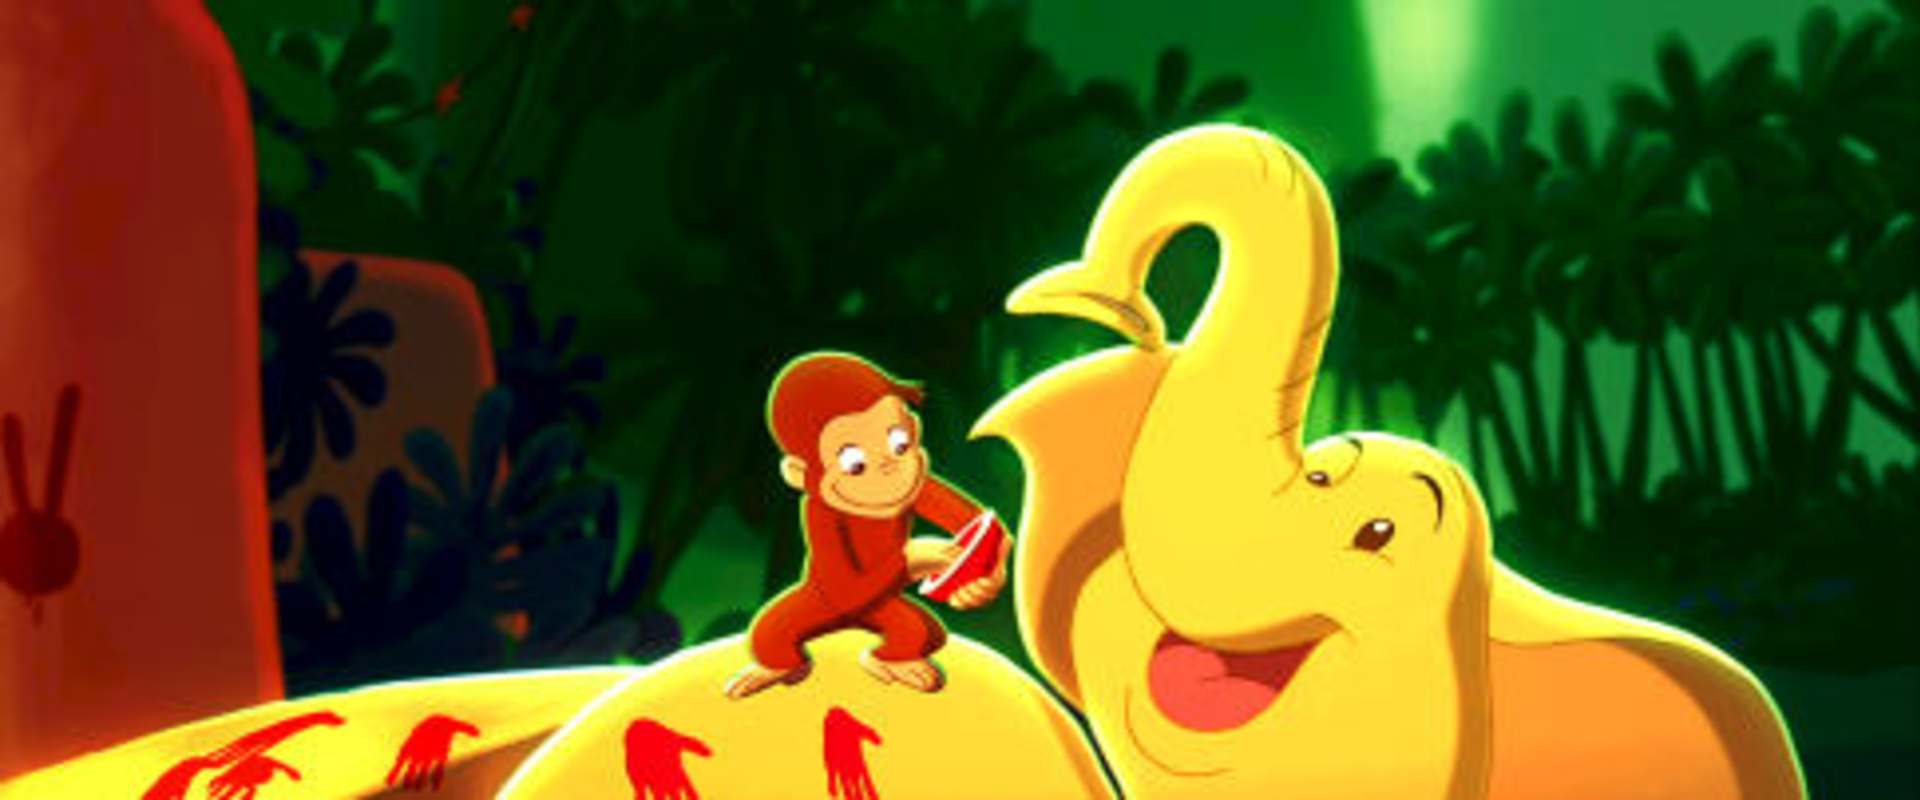 Curious George background 2